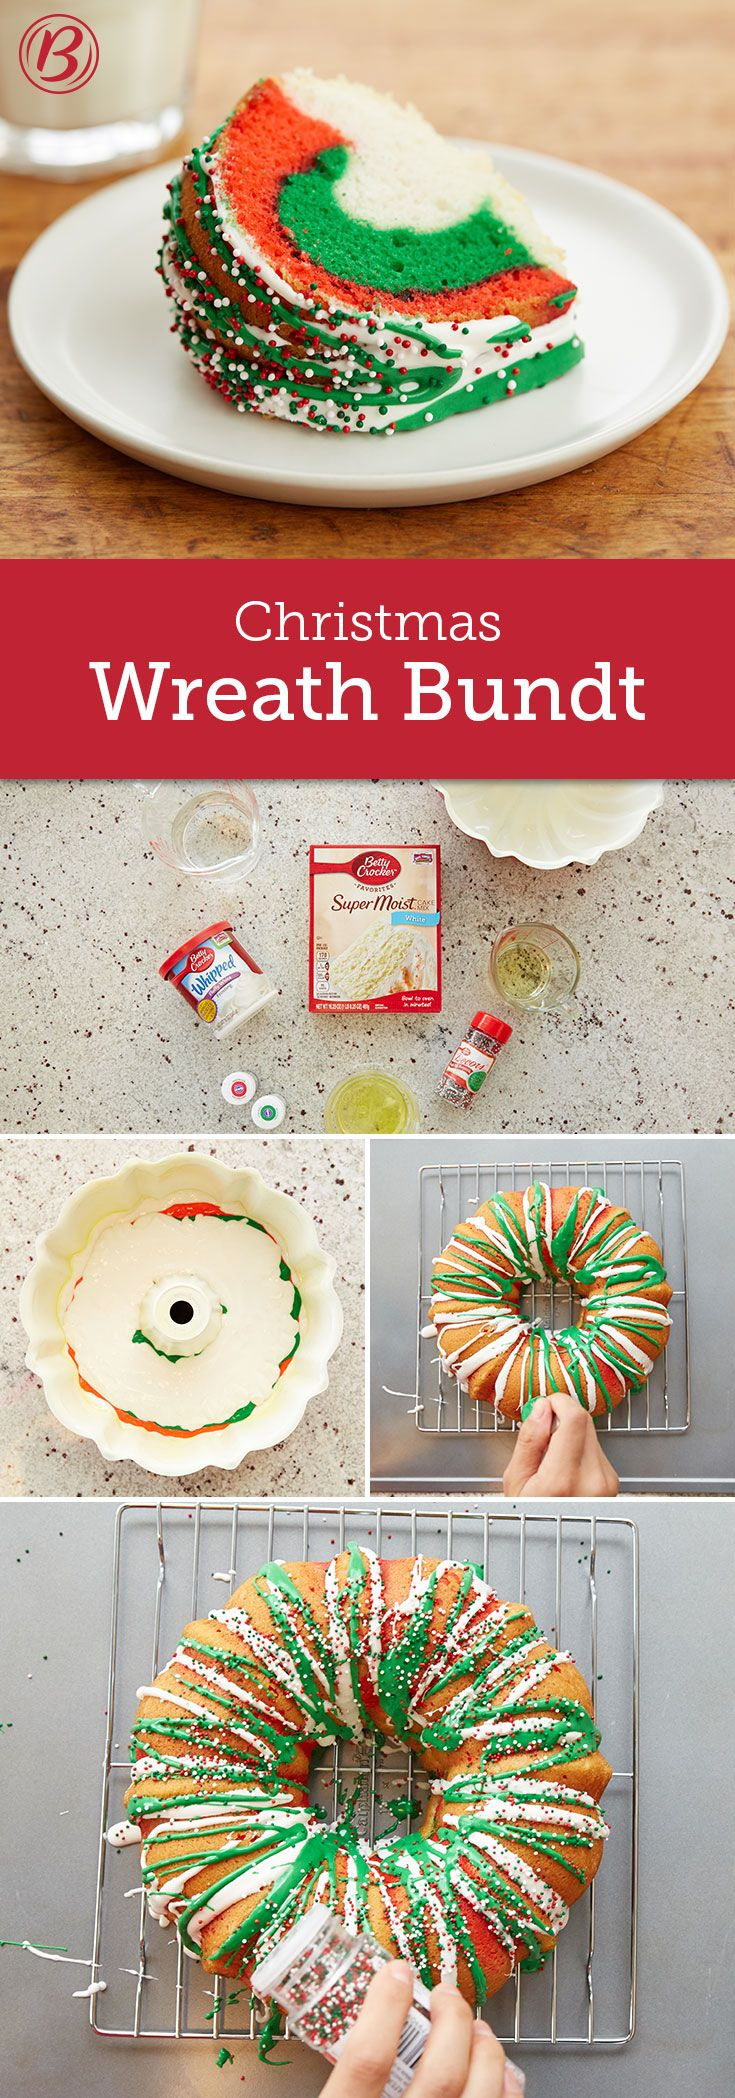 533 best Cakes images on Pinterest Attraction Betty crocker and